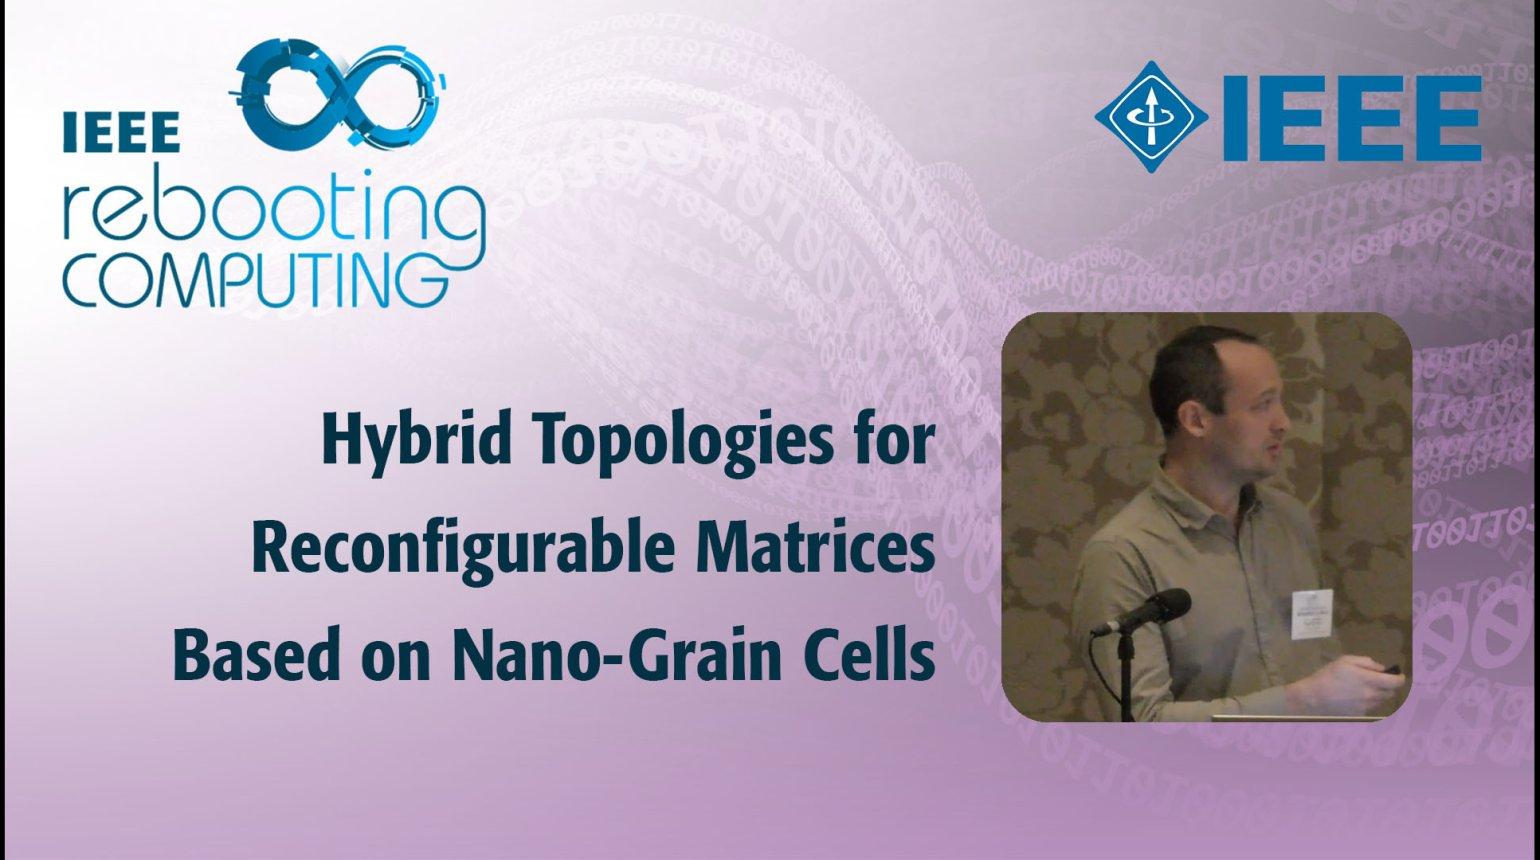 Hybrid Topologies for Reconfigurable Matrices Based on Nano-Grain Cells: IEEE Rebooting Computing 2017